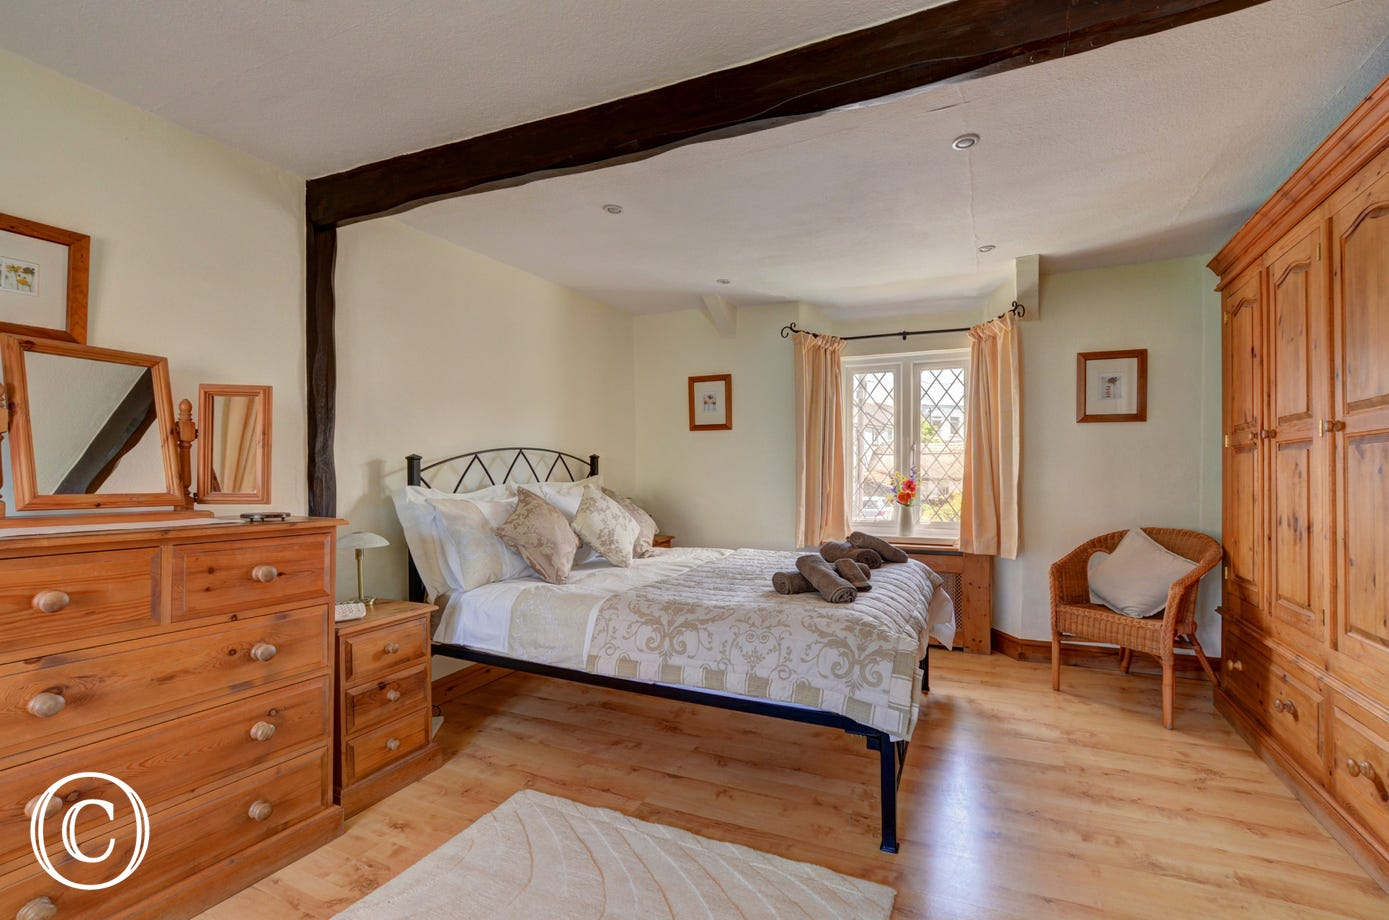 The lovely master bedroom which has plenty of storage